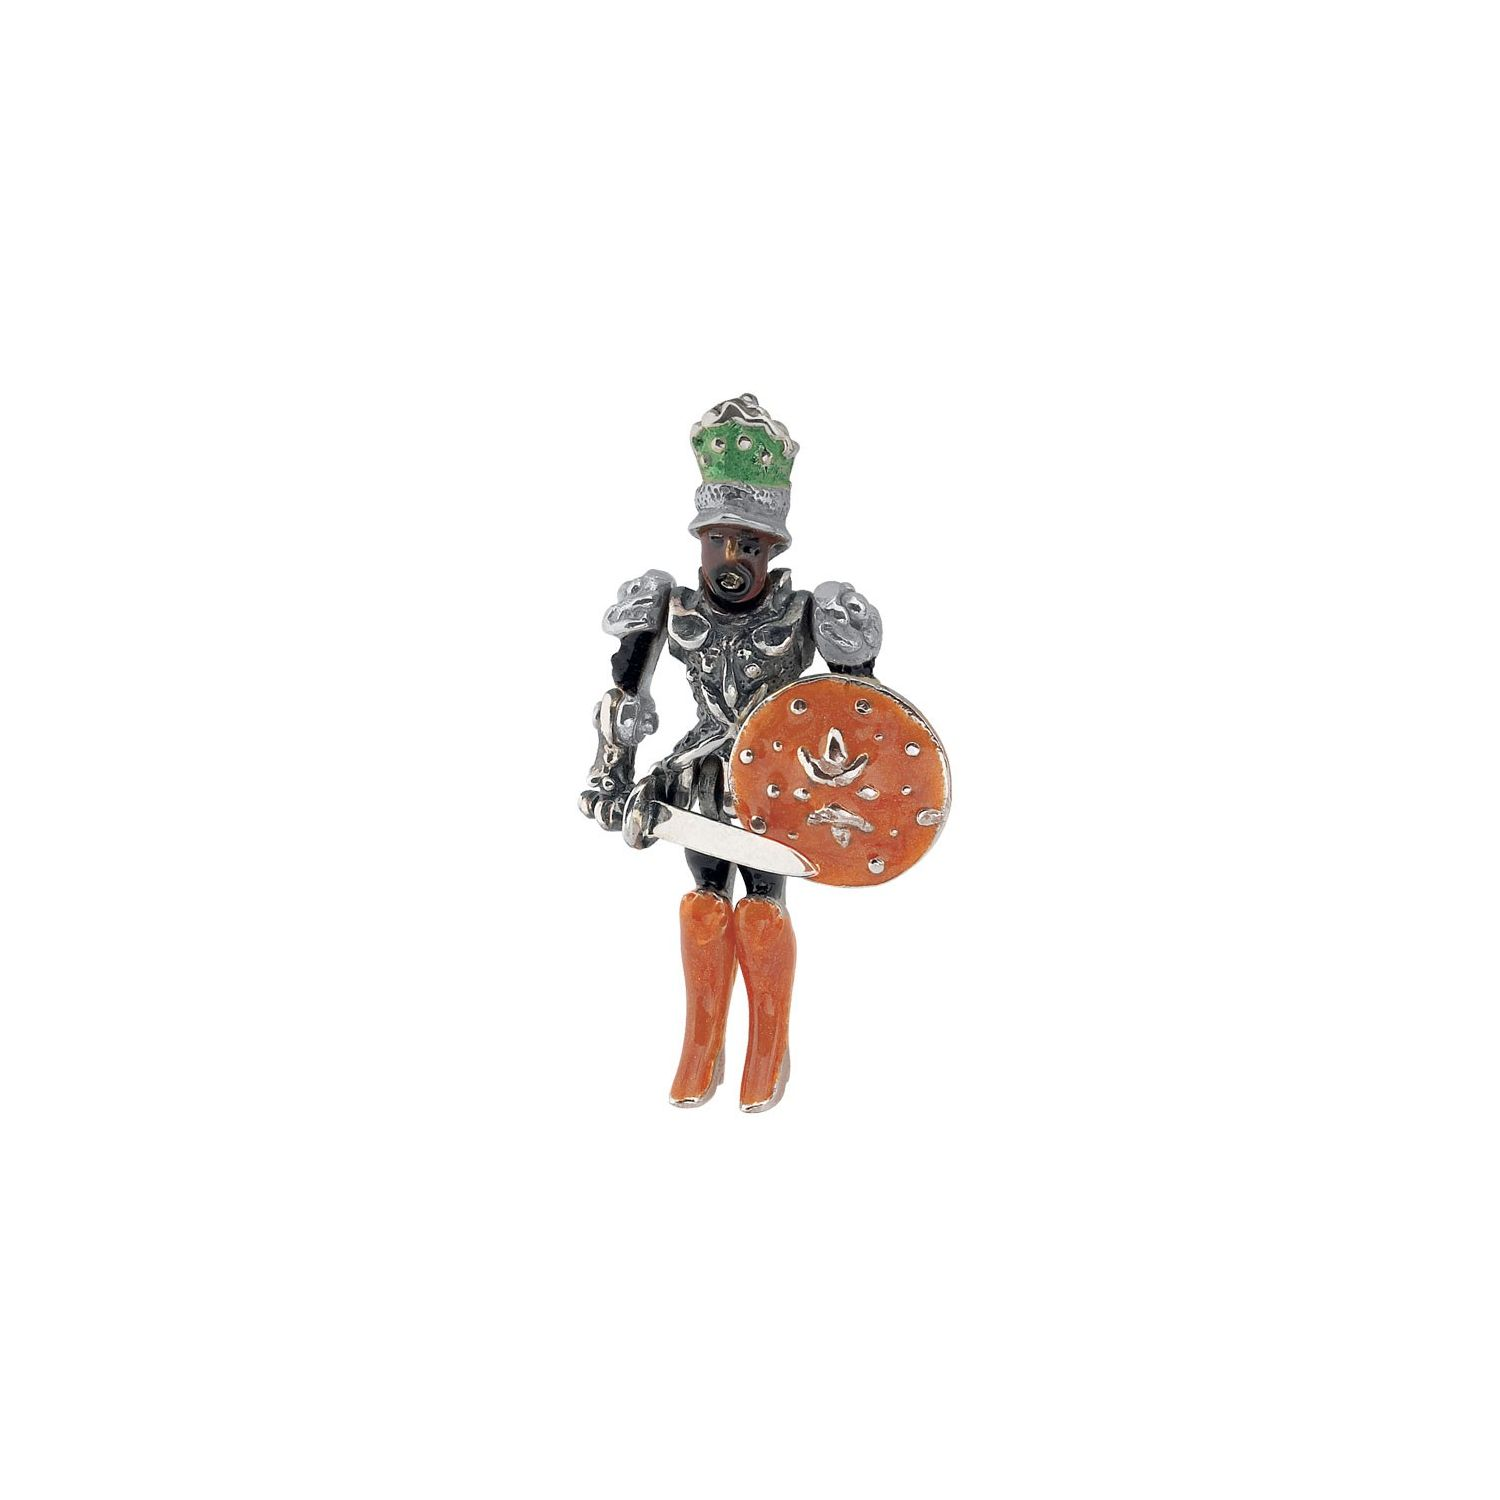 Agramante Puppets Charm (70149)